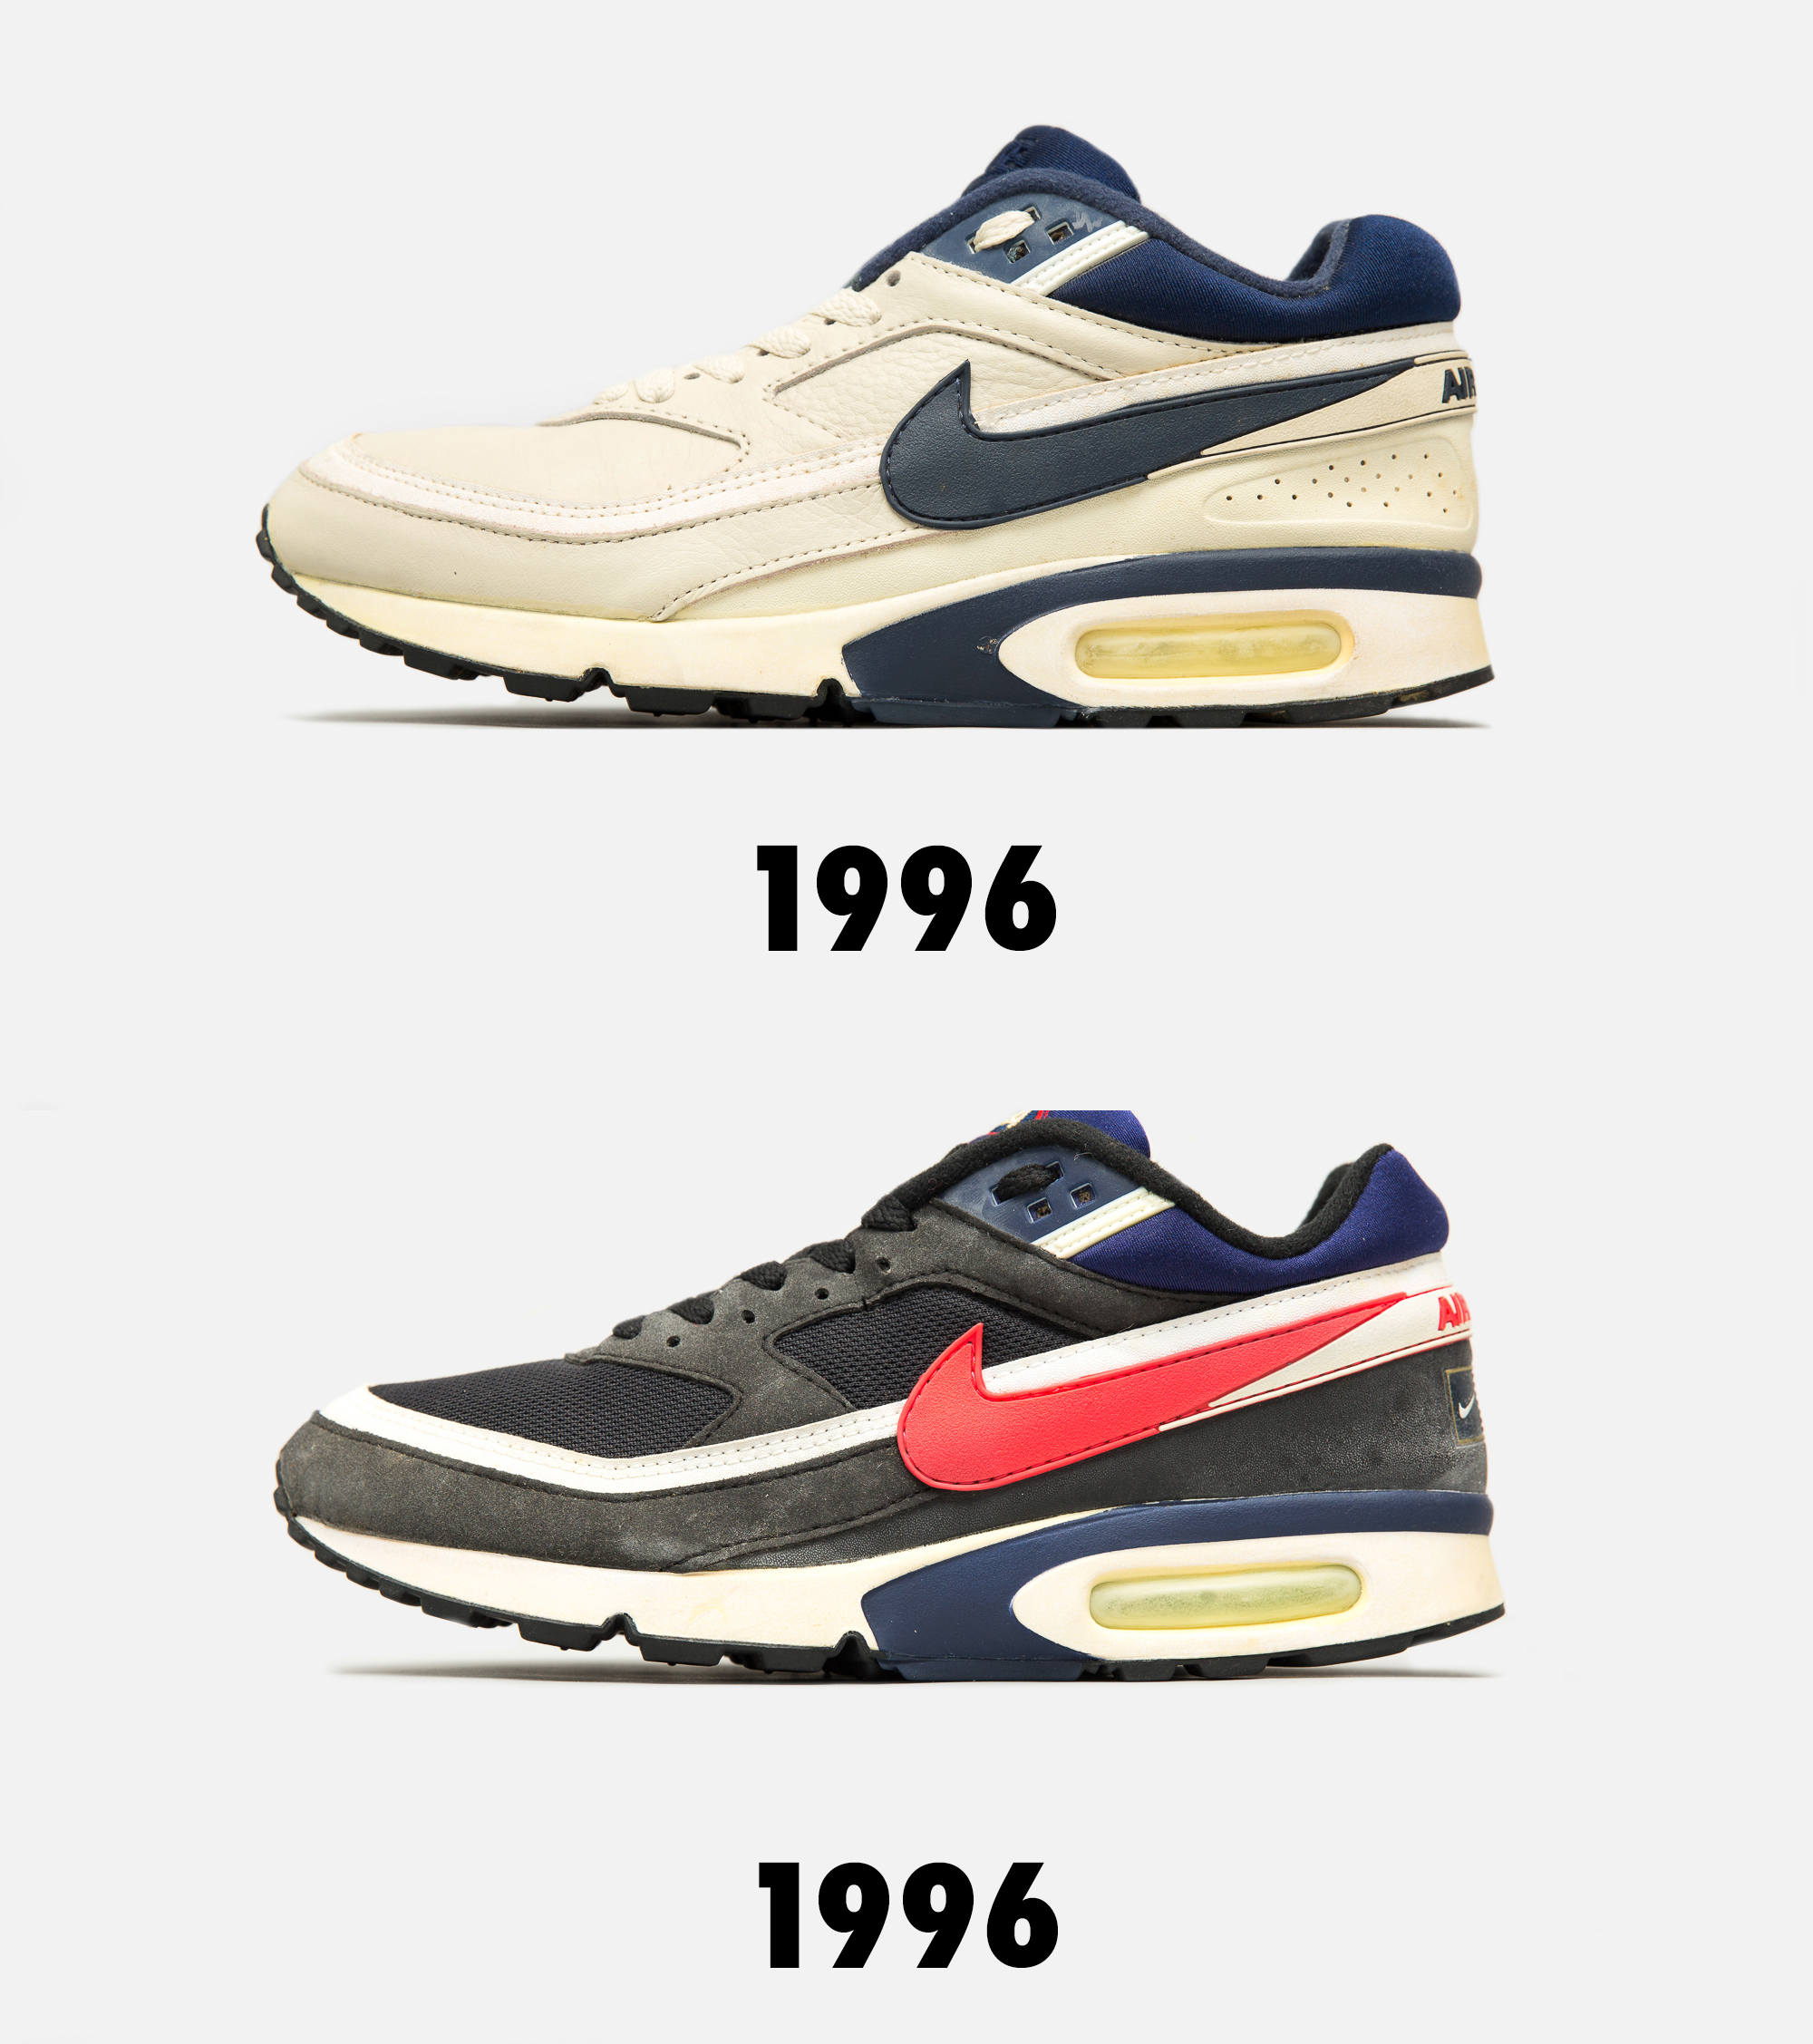 check out cc30c 04746 Characteristics on the uppers took note from other shoes of the same era,  visually evolving year by year. Nike Air Max Classic BW ...